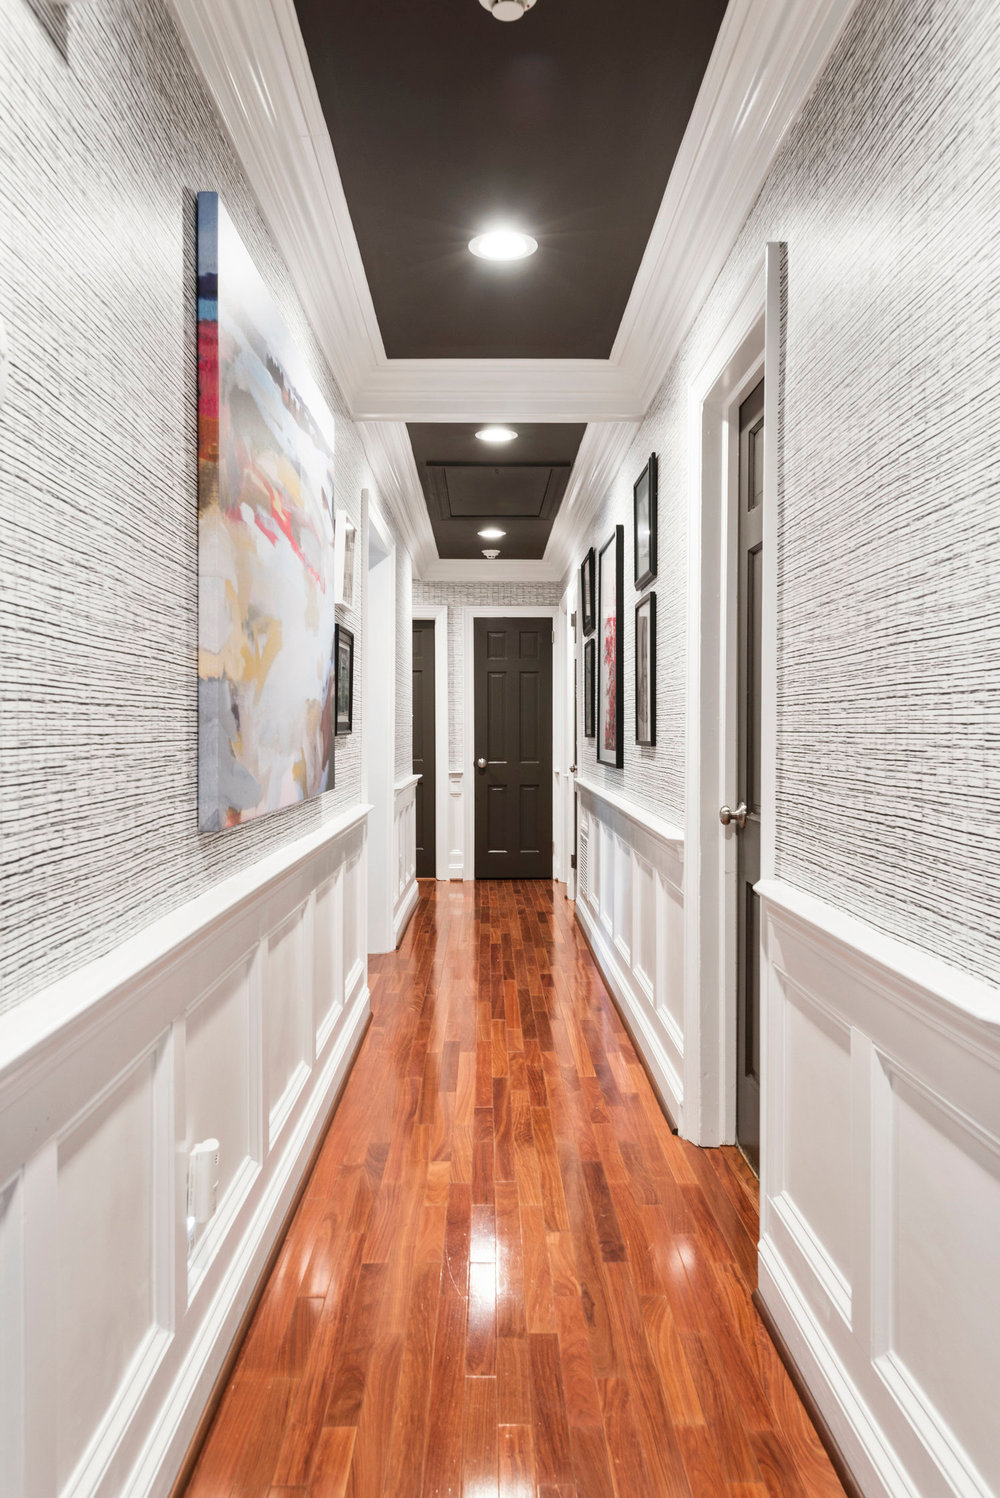 Beautiful Hallways The Home of Jana Donohoe Designs in Fayetveville, North Carolina .jpg